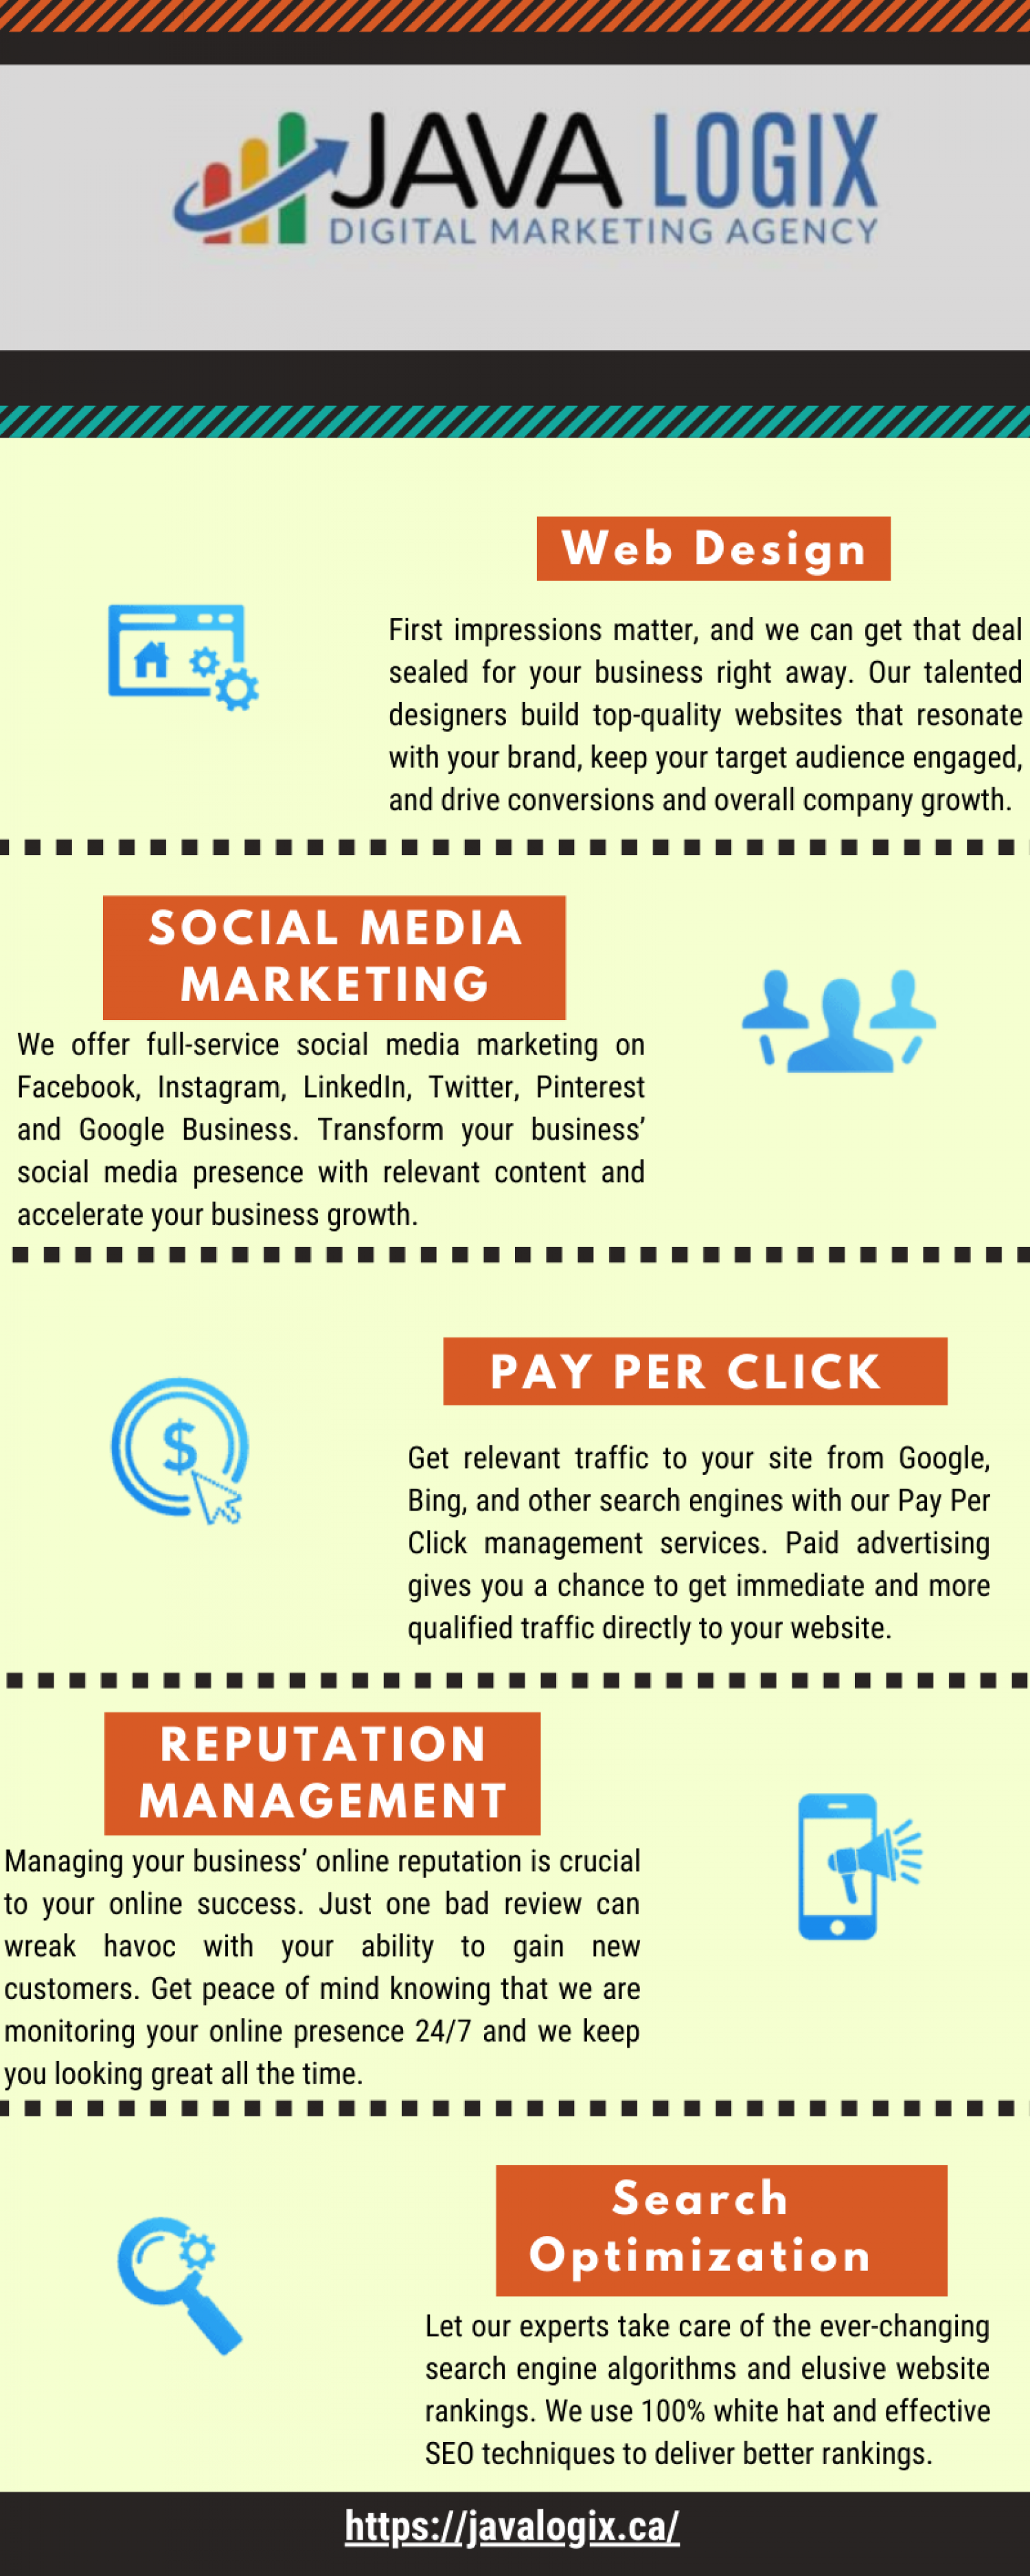 Digital Marketing Agency | Java Logix Infographic